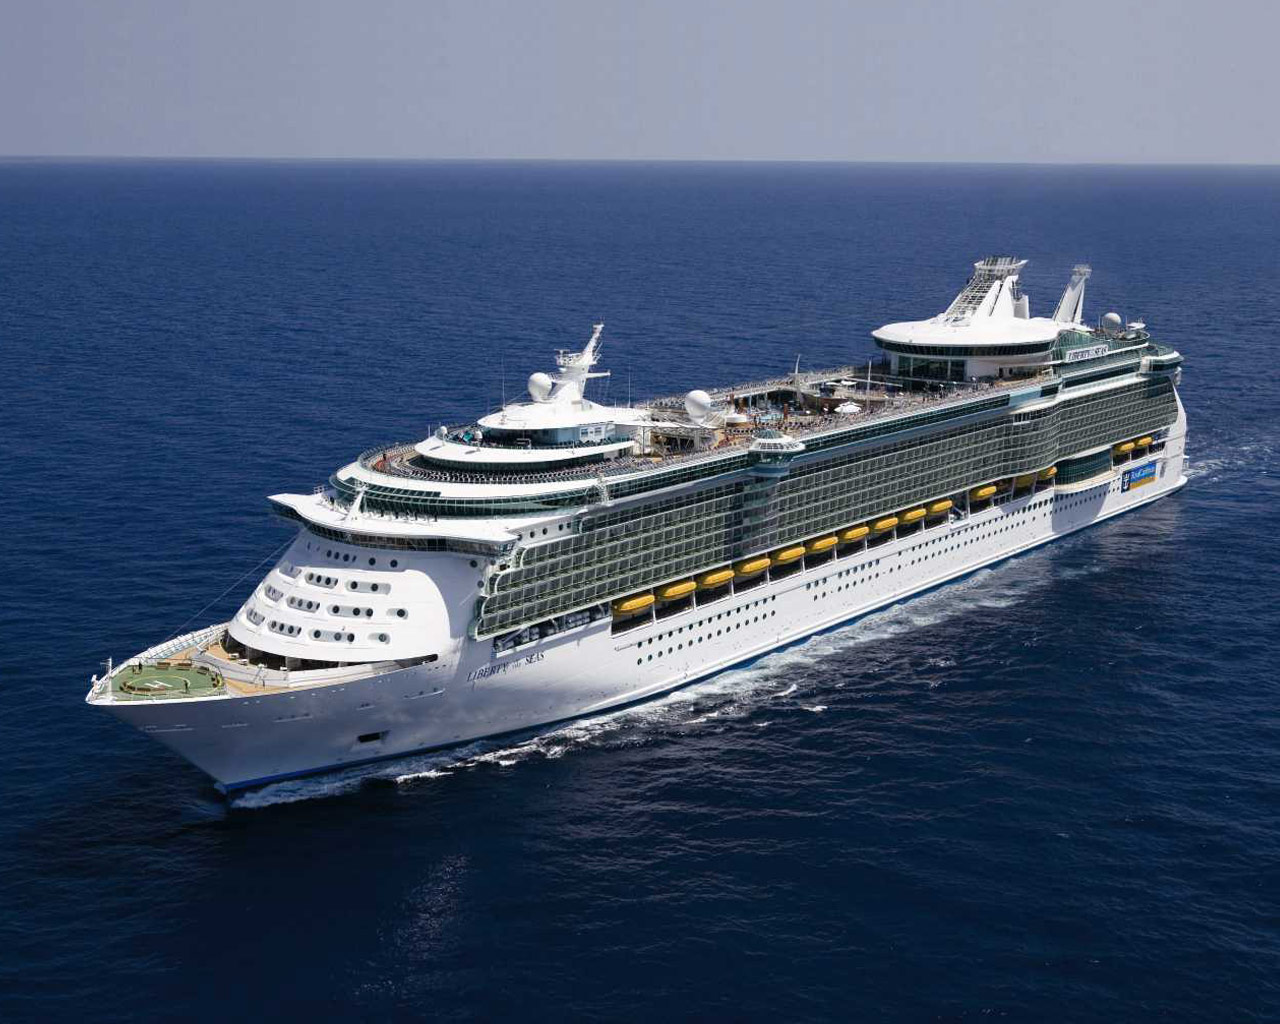 Royal Caribbean Expensive Ship 281.41 Kb